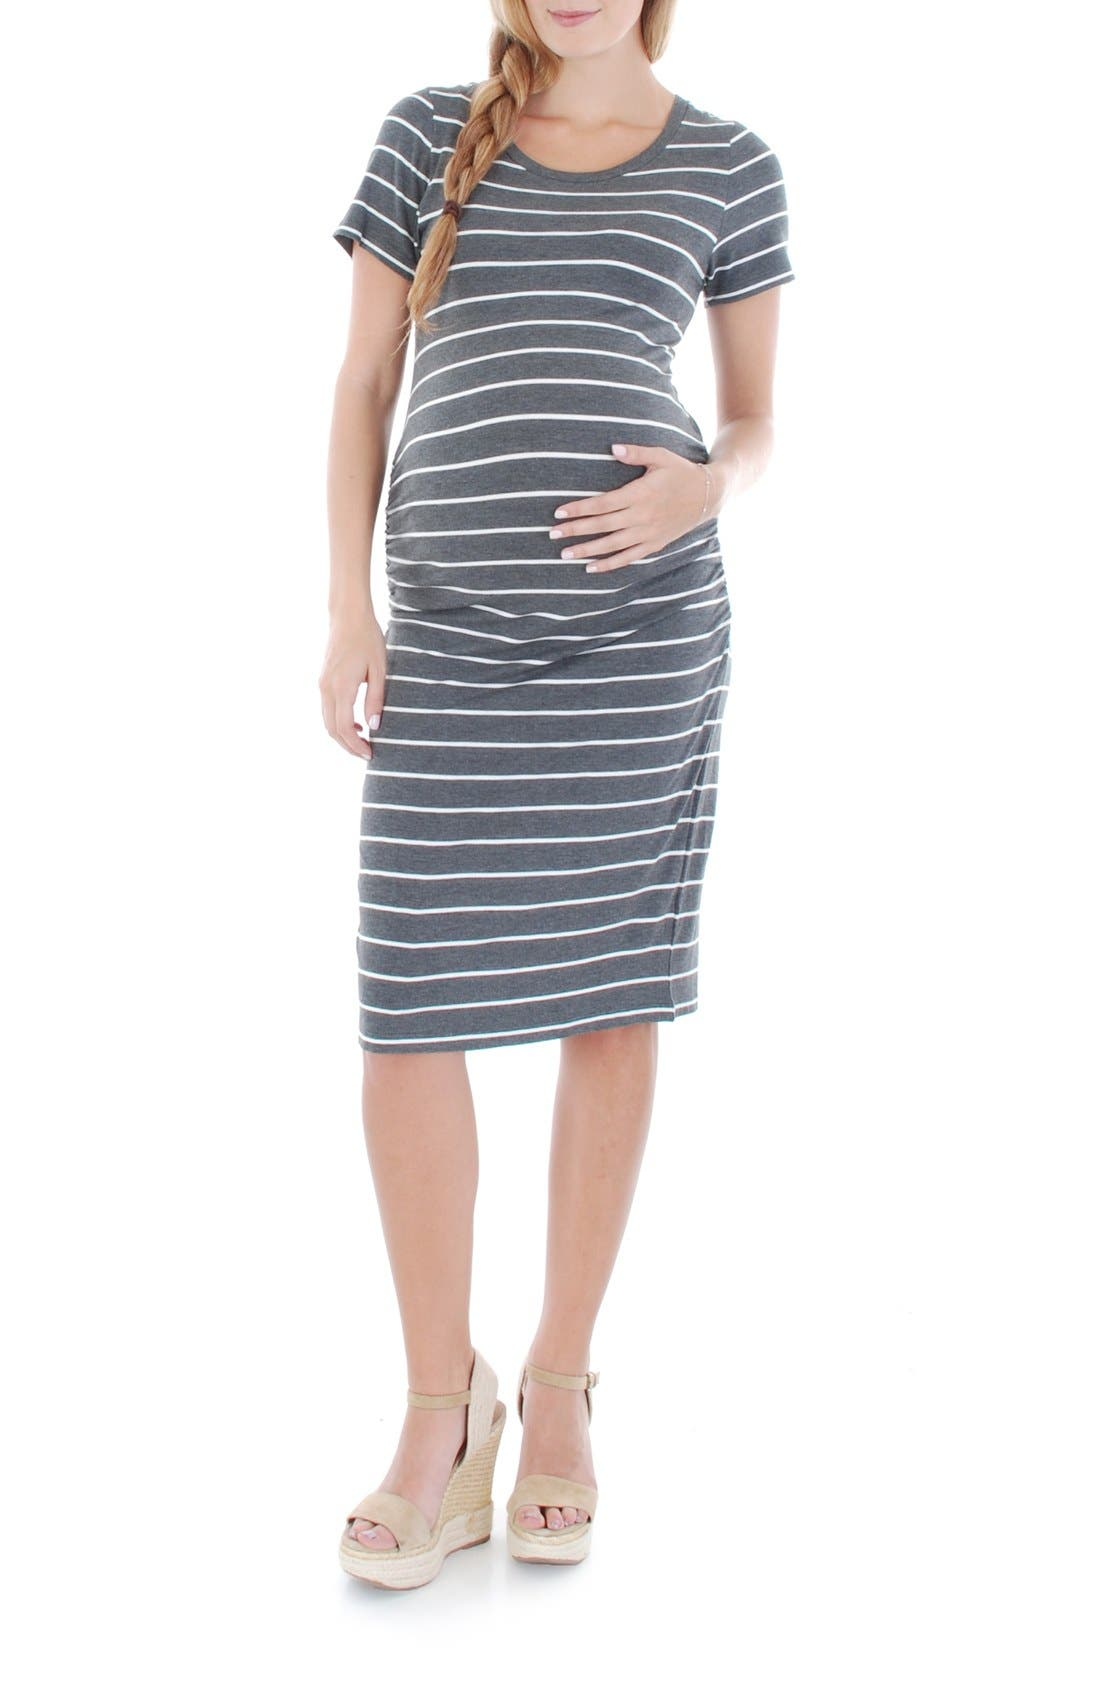 Main Image - Everly Grey 'Camila' Stripe Maternity Dress